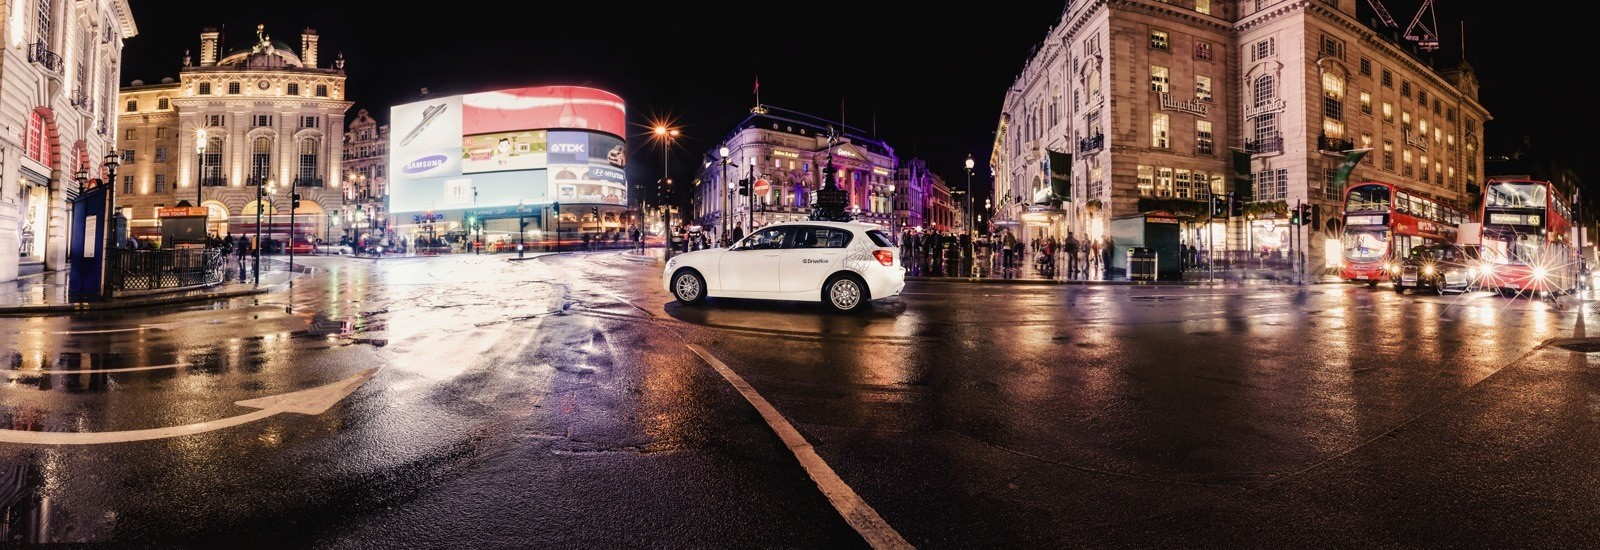 Drivenow Düsseldorf Bmw Launches Drivenow Carsharing Service In London Prices Start